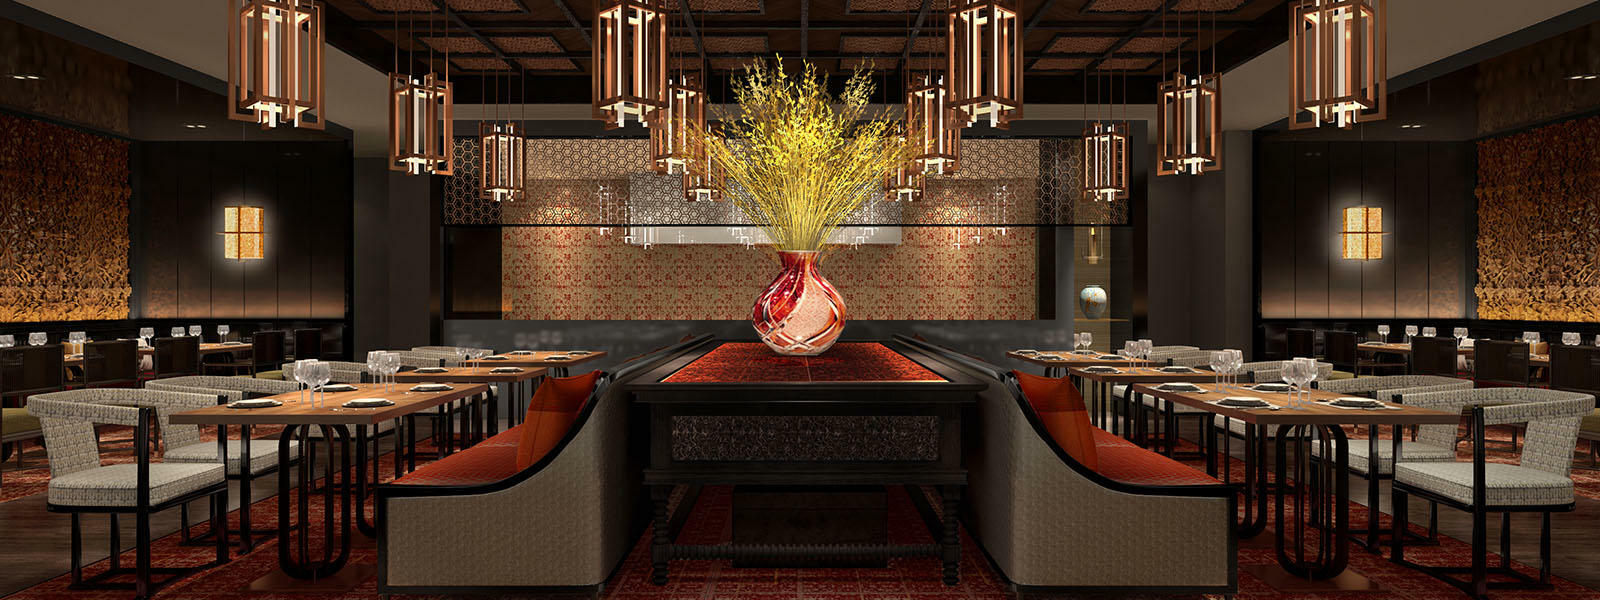 The Vibrancy Of Asian Cuisine Comes Alive At Crown Sydney